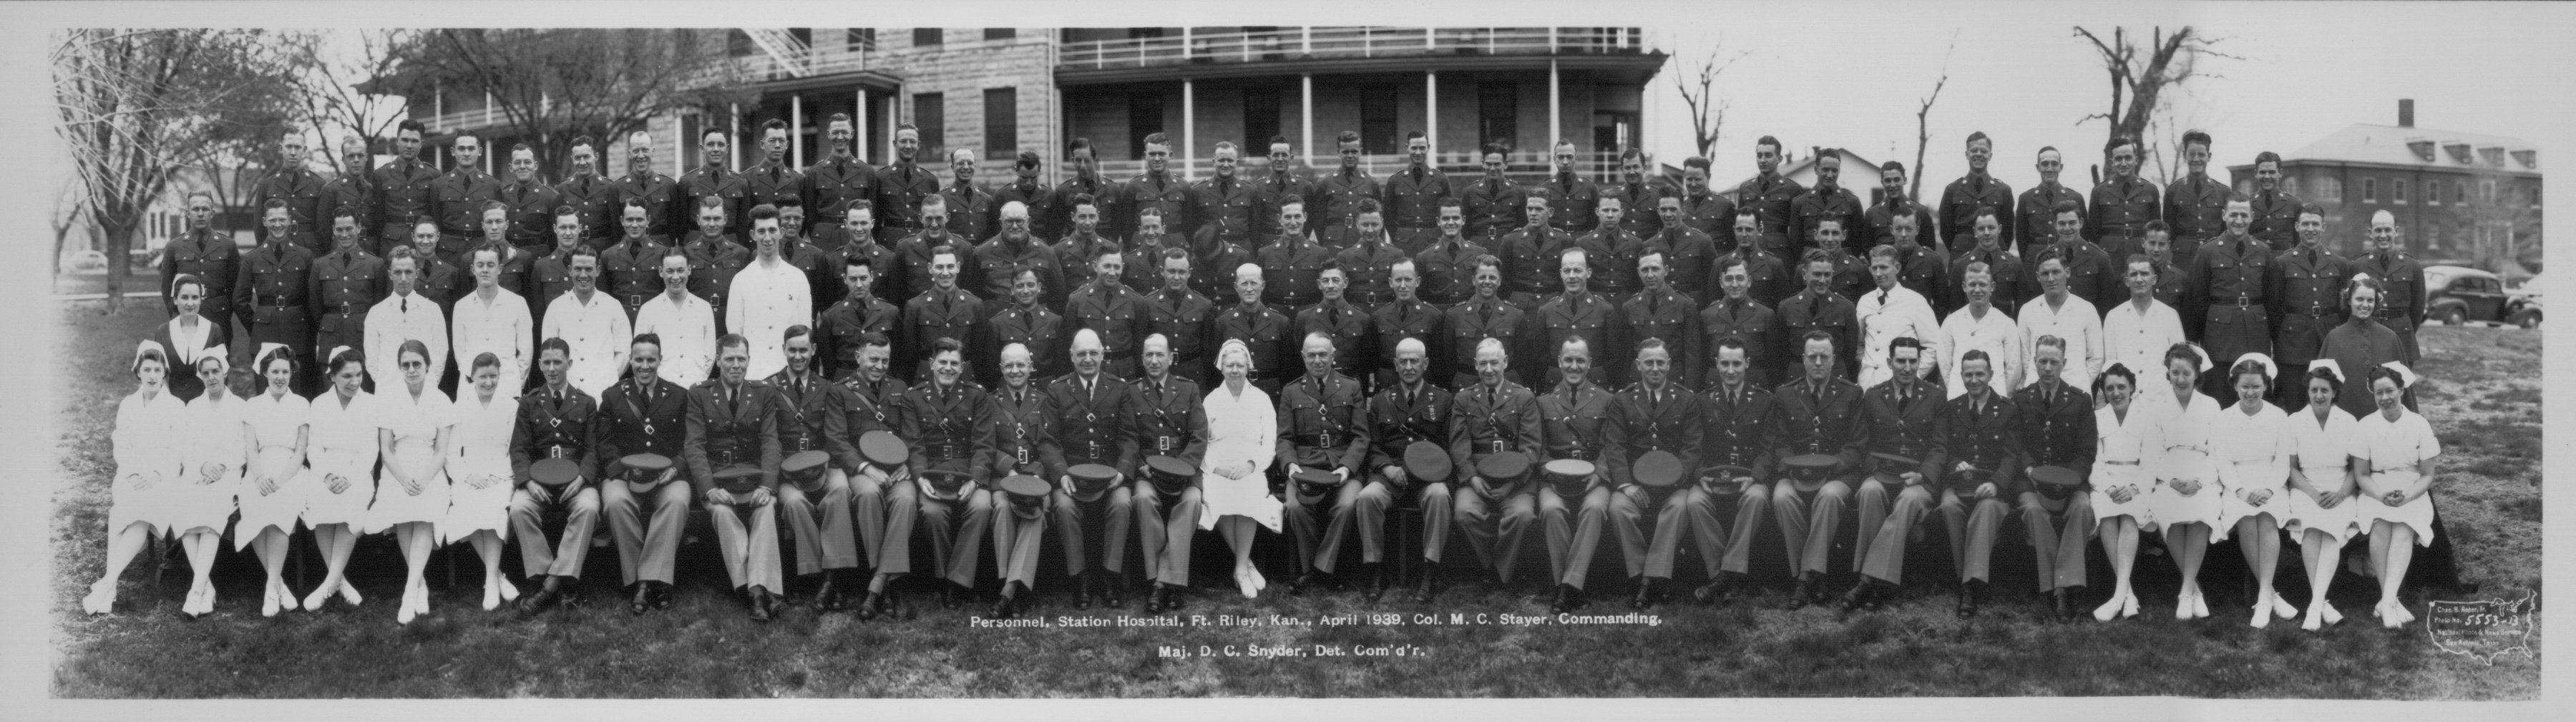 Station Hospital personnel at Fort Riley